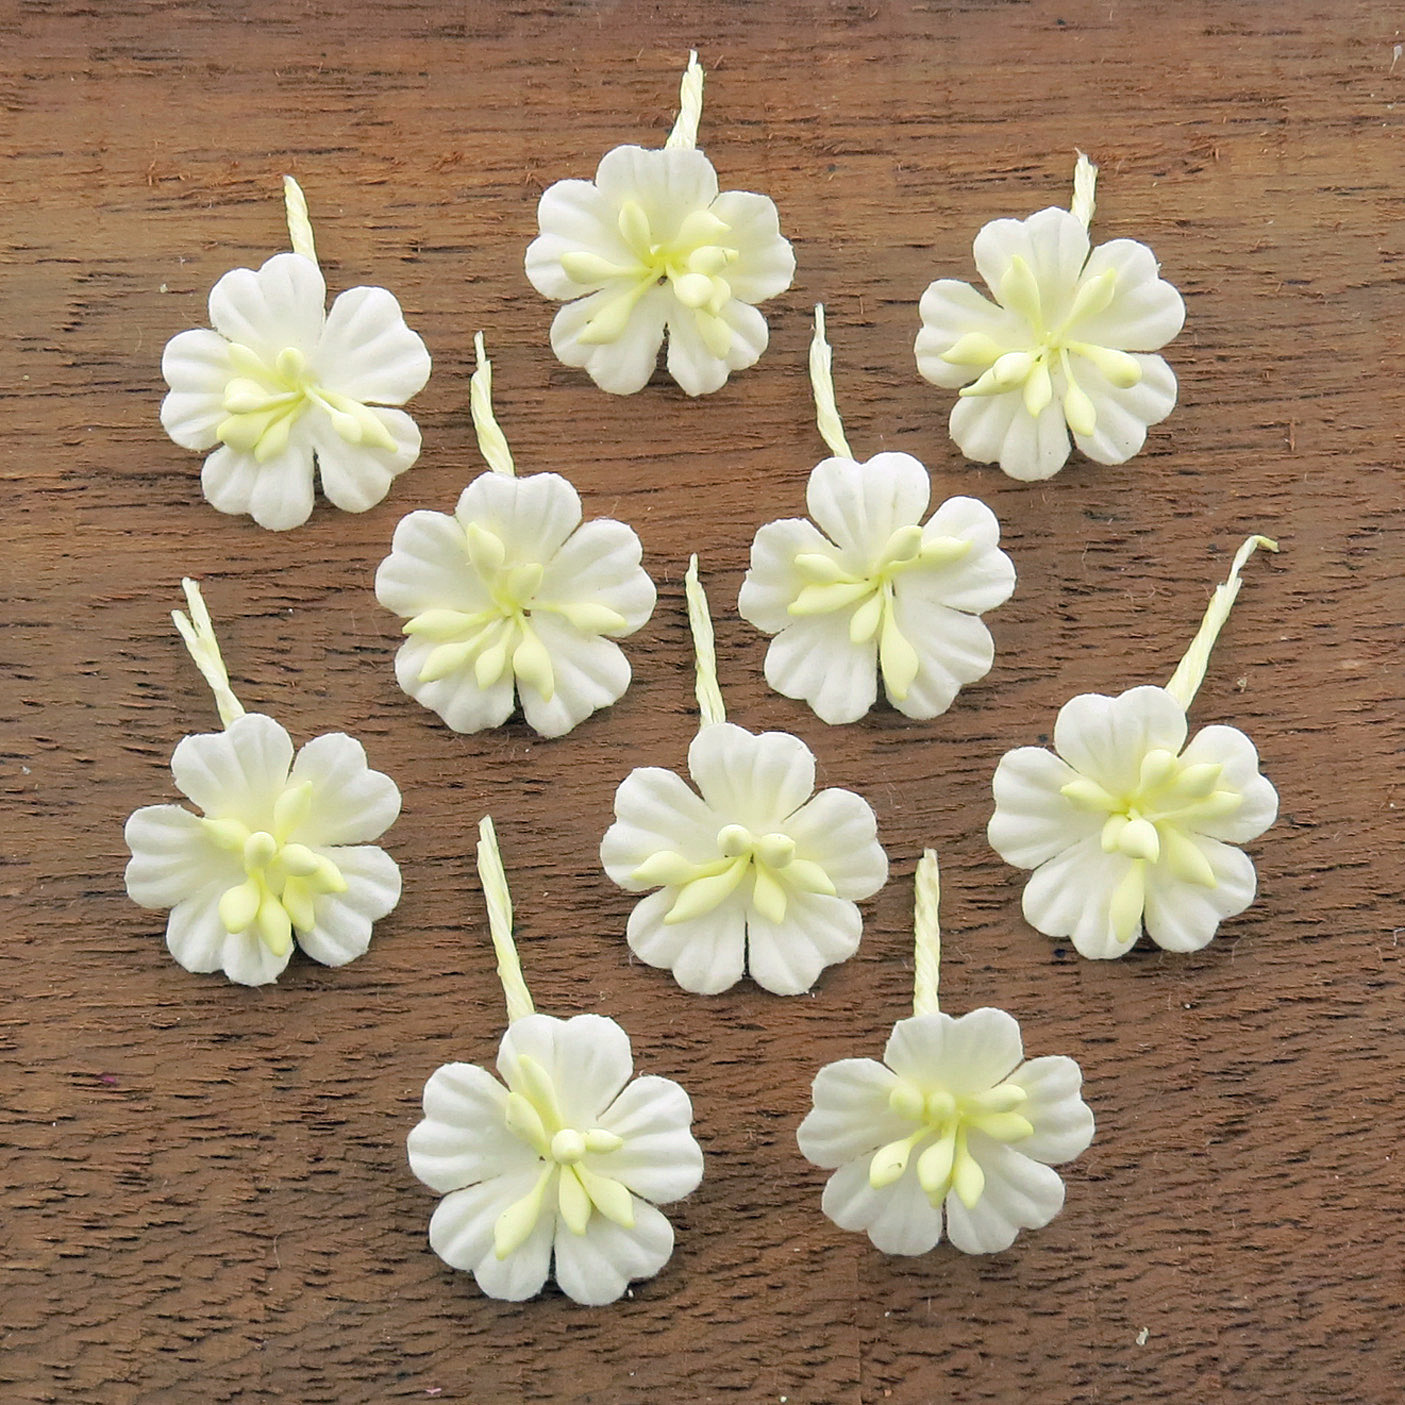 WHITE COTTON STEM MULBERRY PAPER FLOWERS - SET F